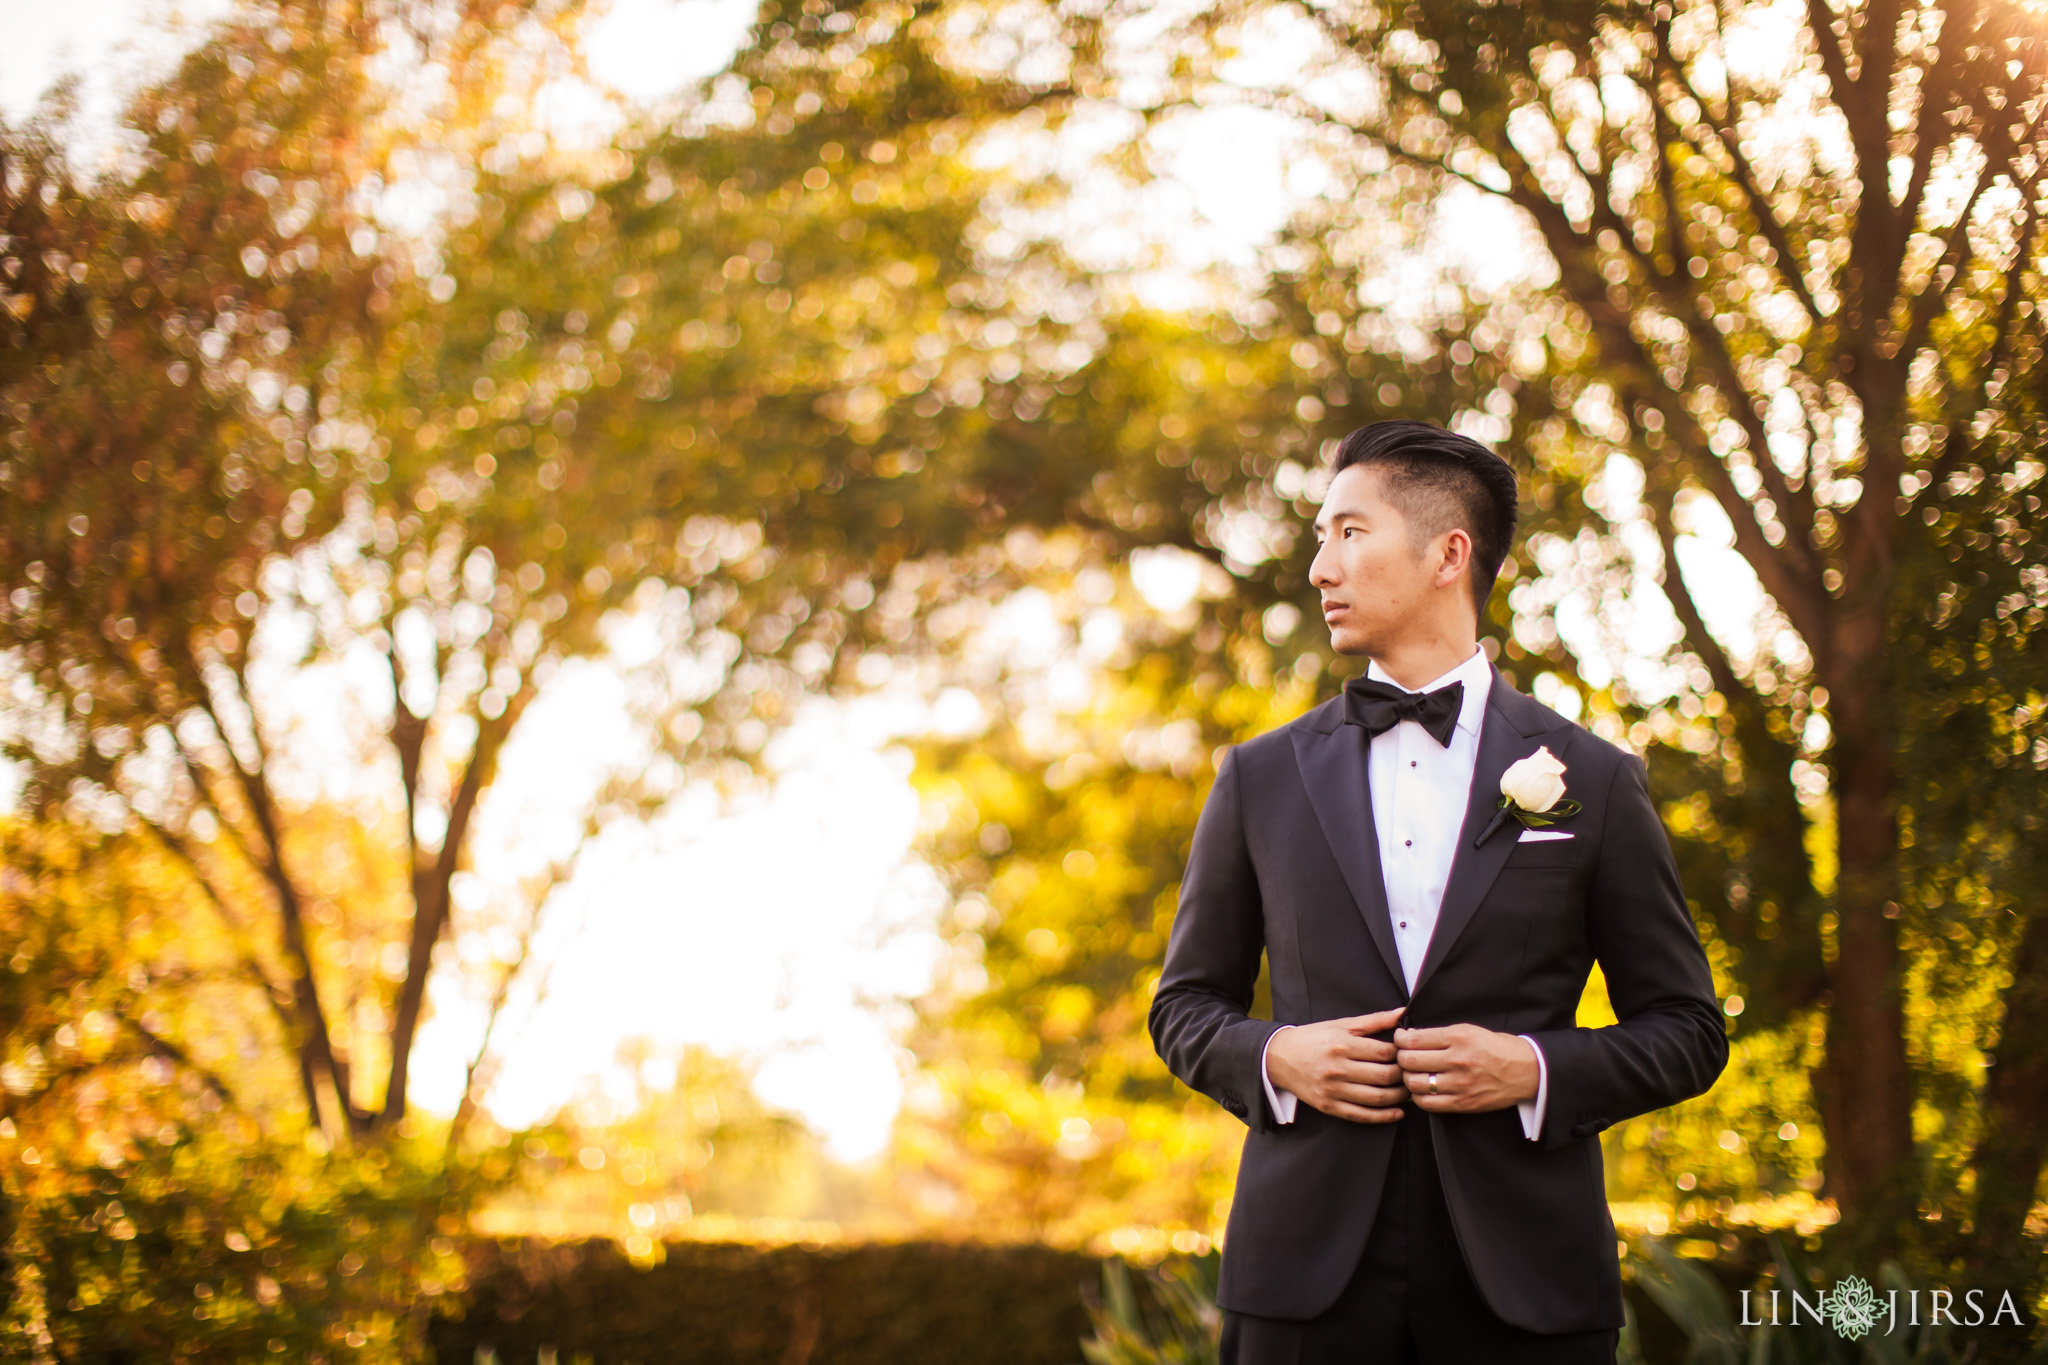 11 four seasons westlake village groom wedding photography